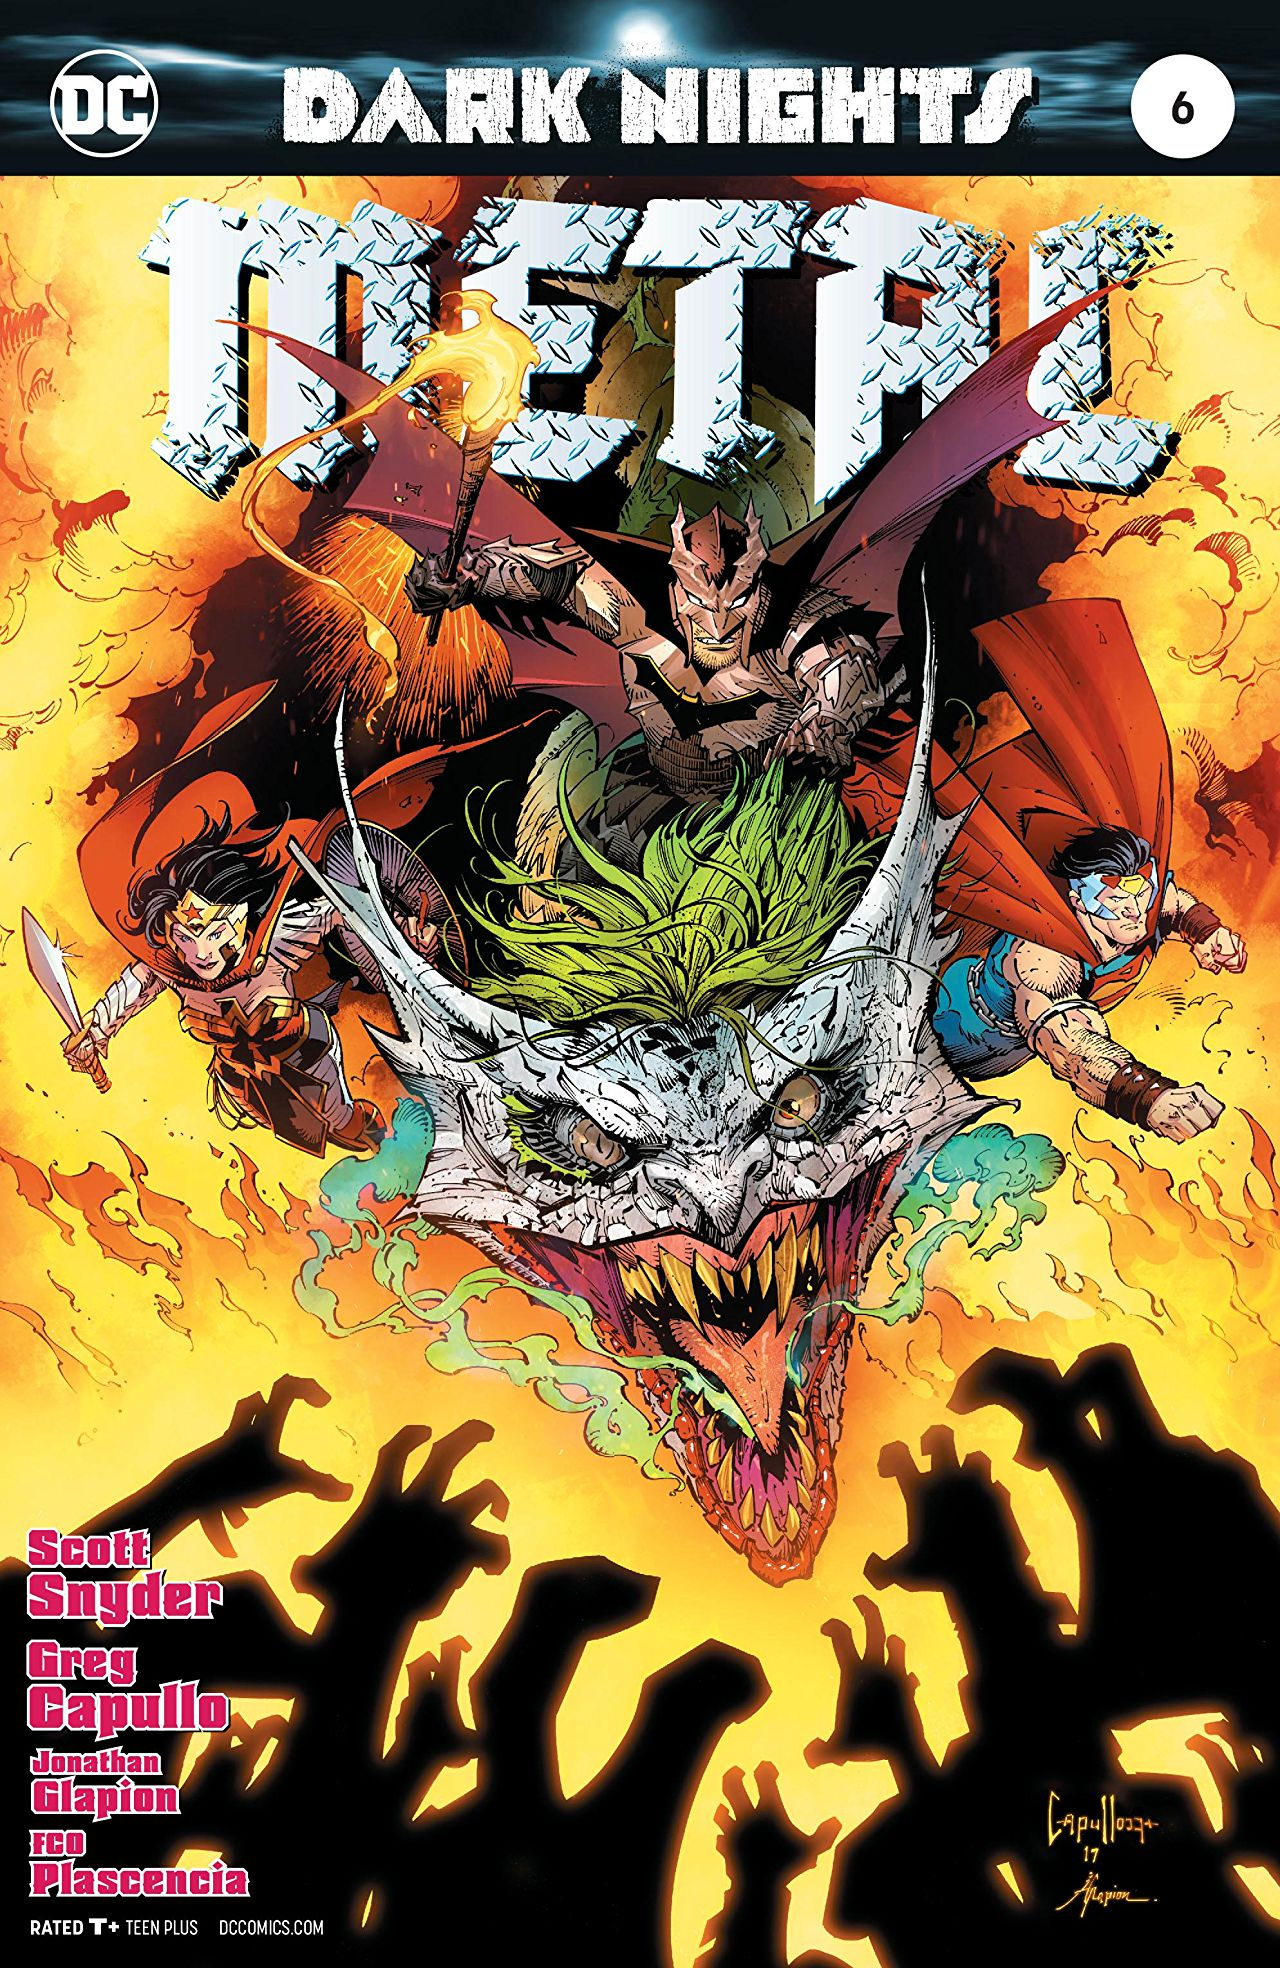 Dark Nights: Metal #6 review: An ending worthy of the hype